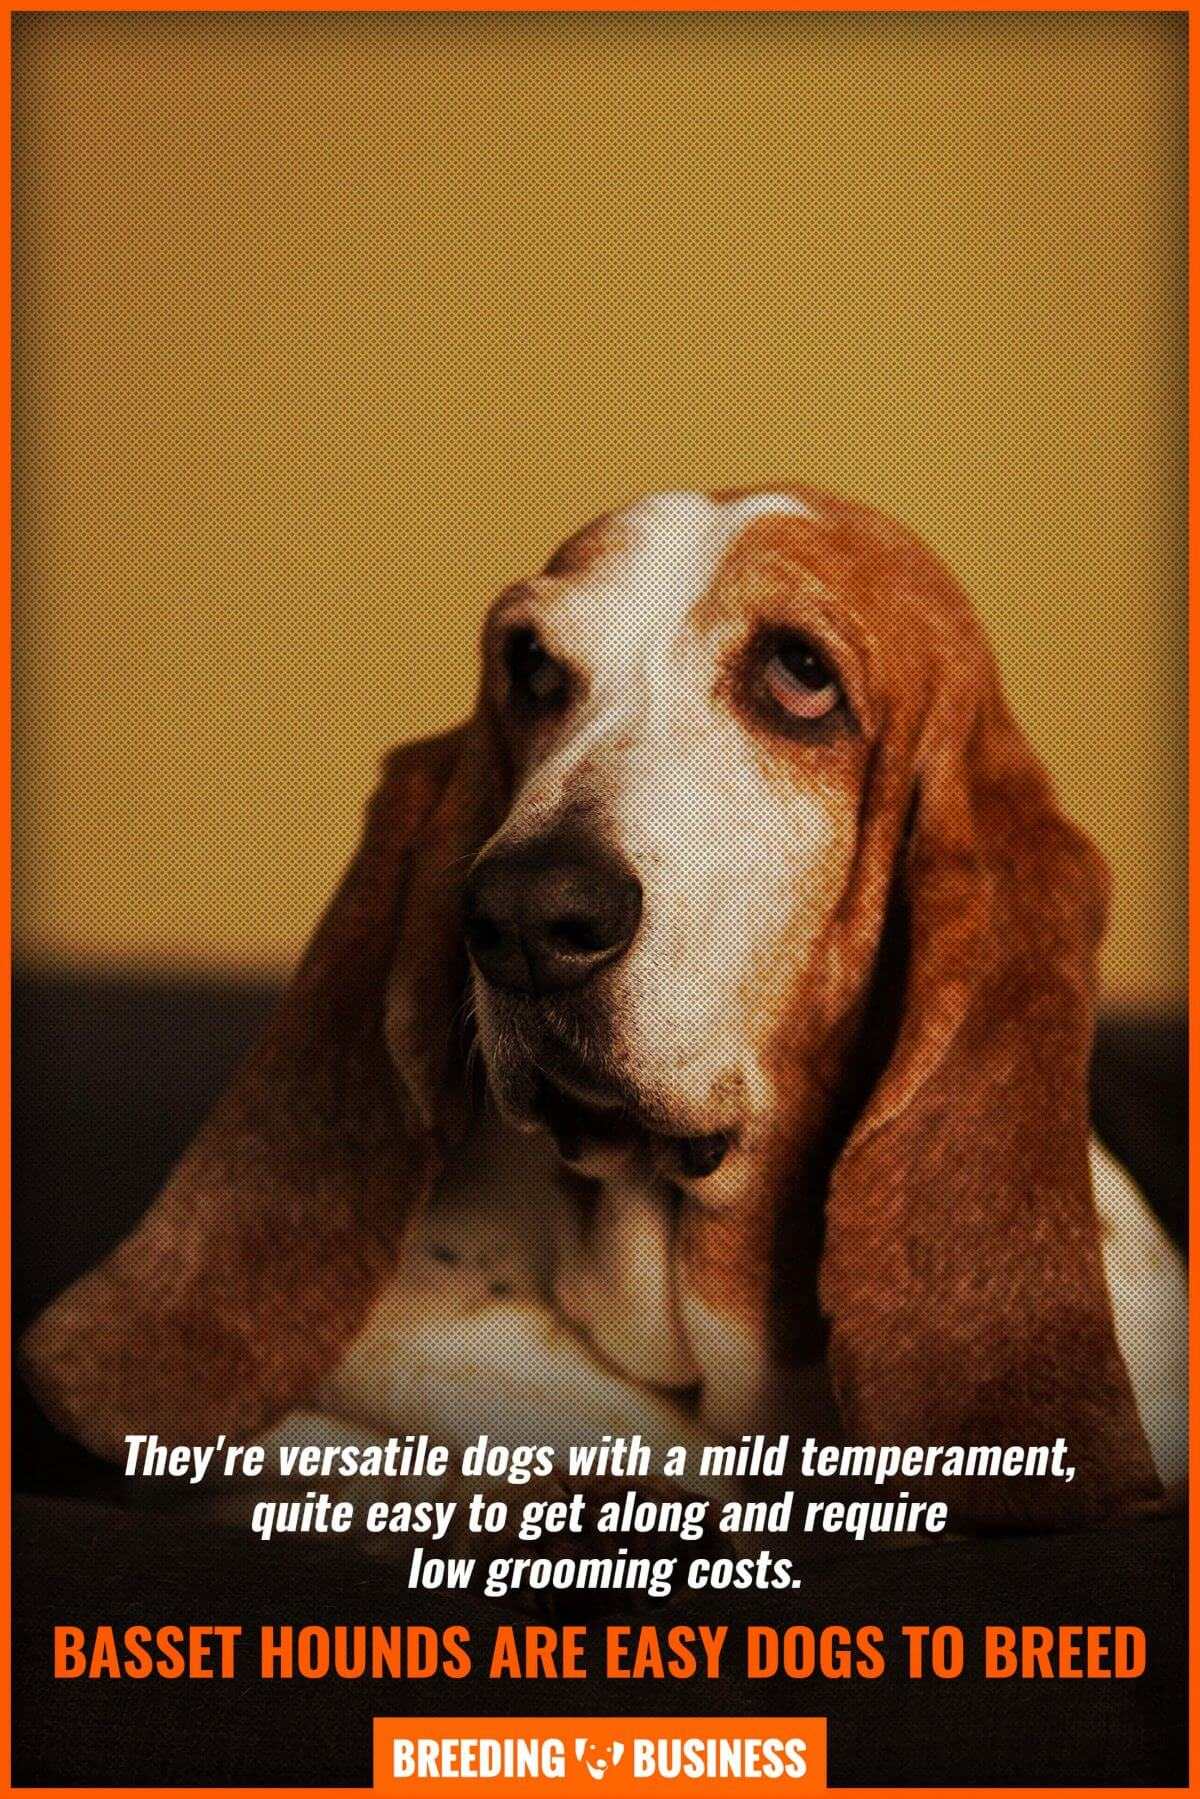 breeding basset hounds